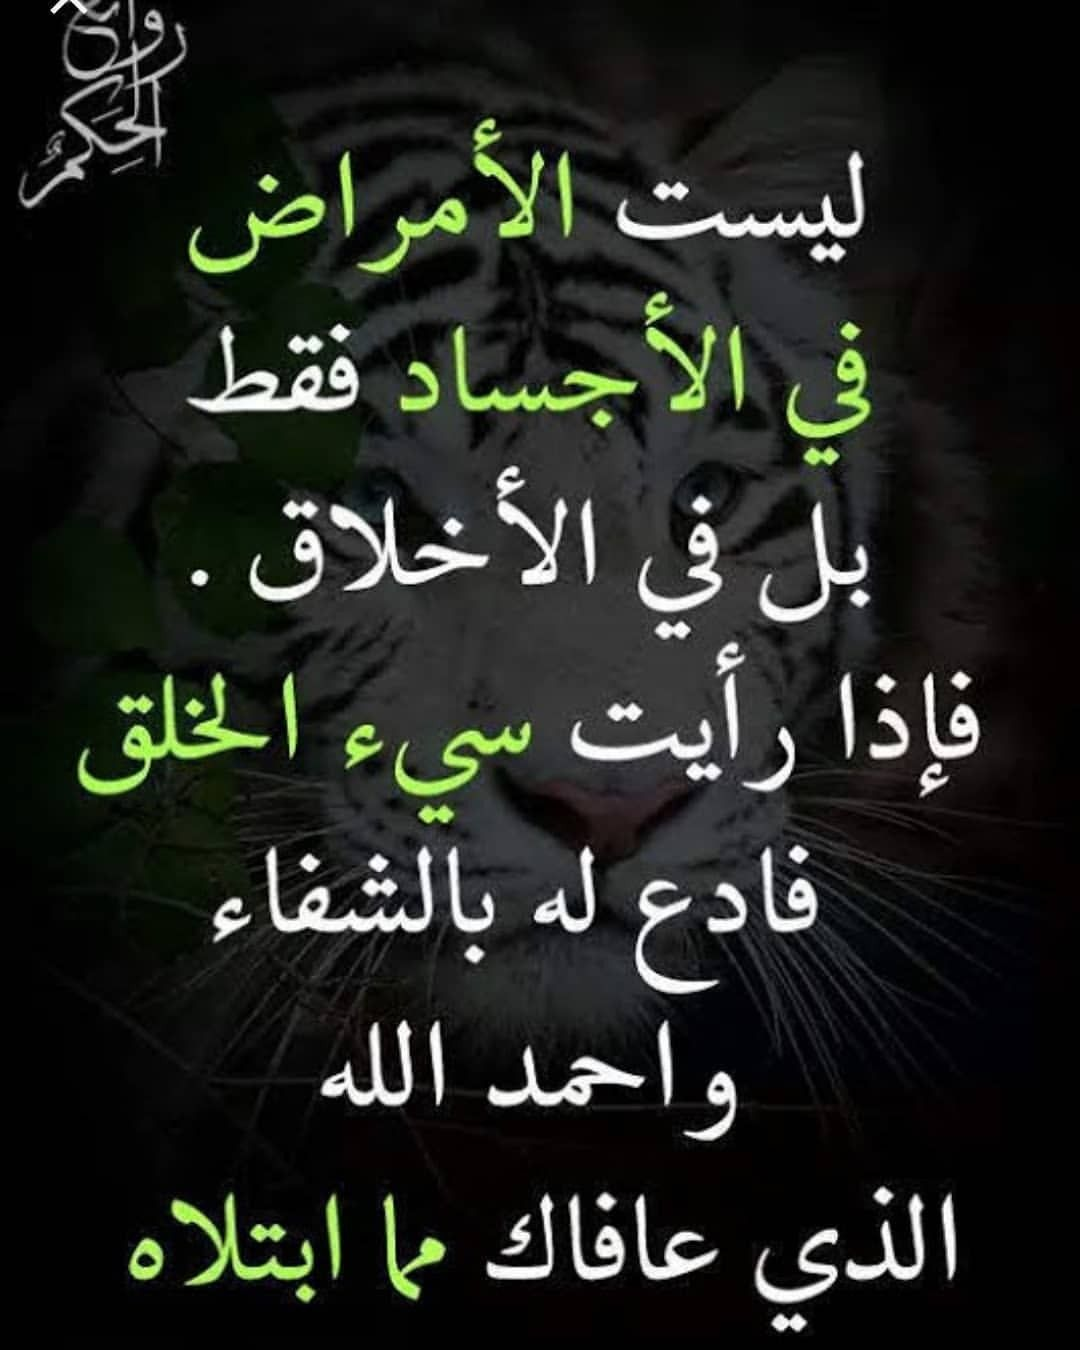 Pin By Liyana Ly On I Love Allah Quran Islam The Prophet Miracles Hadith Heaven Prophets Faith Prayer Dua حكم وعبر احاديث الله اسلام قرآن دعاء Proverbs Quotes Cool Words Book Quotes